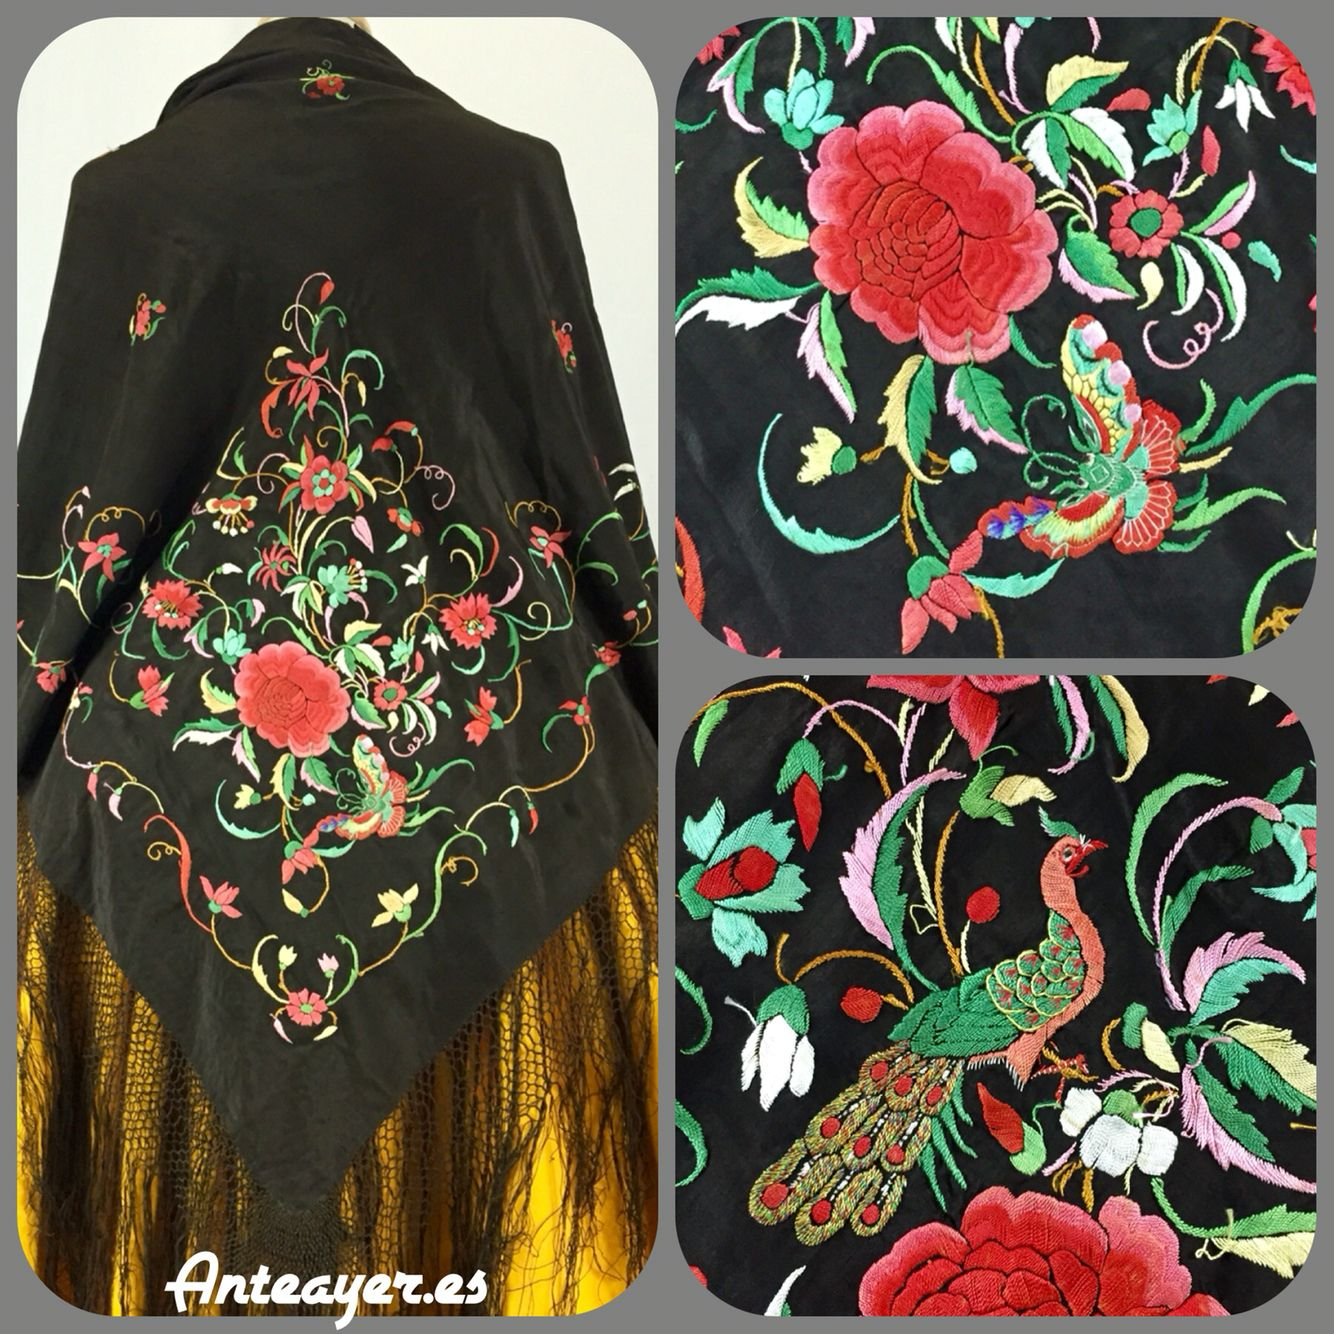 Anteayer.es, Manton de Manila | embroidery | Pinterest | Manton de ...